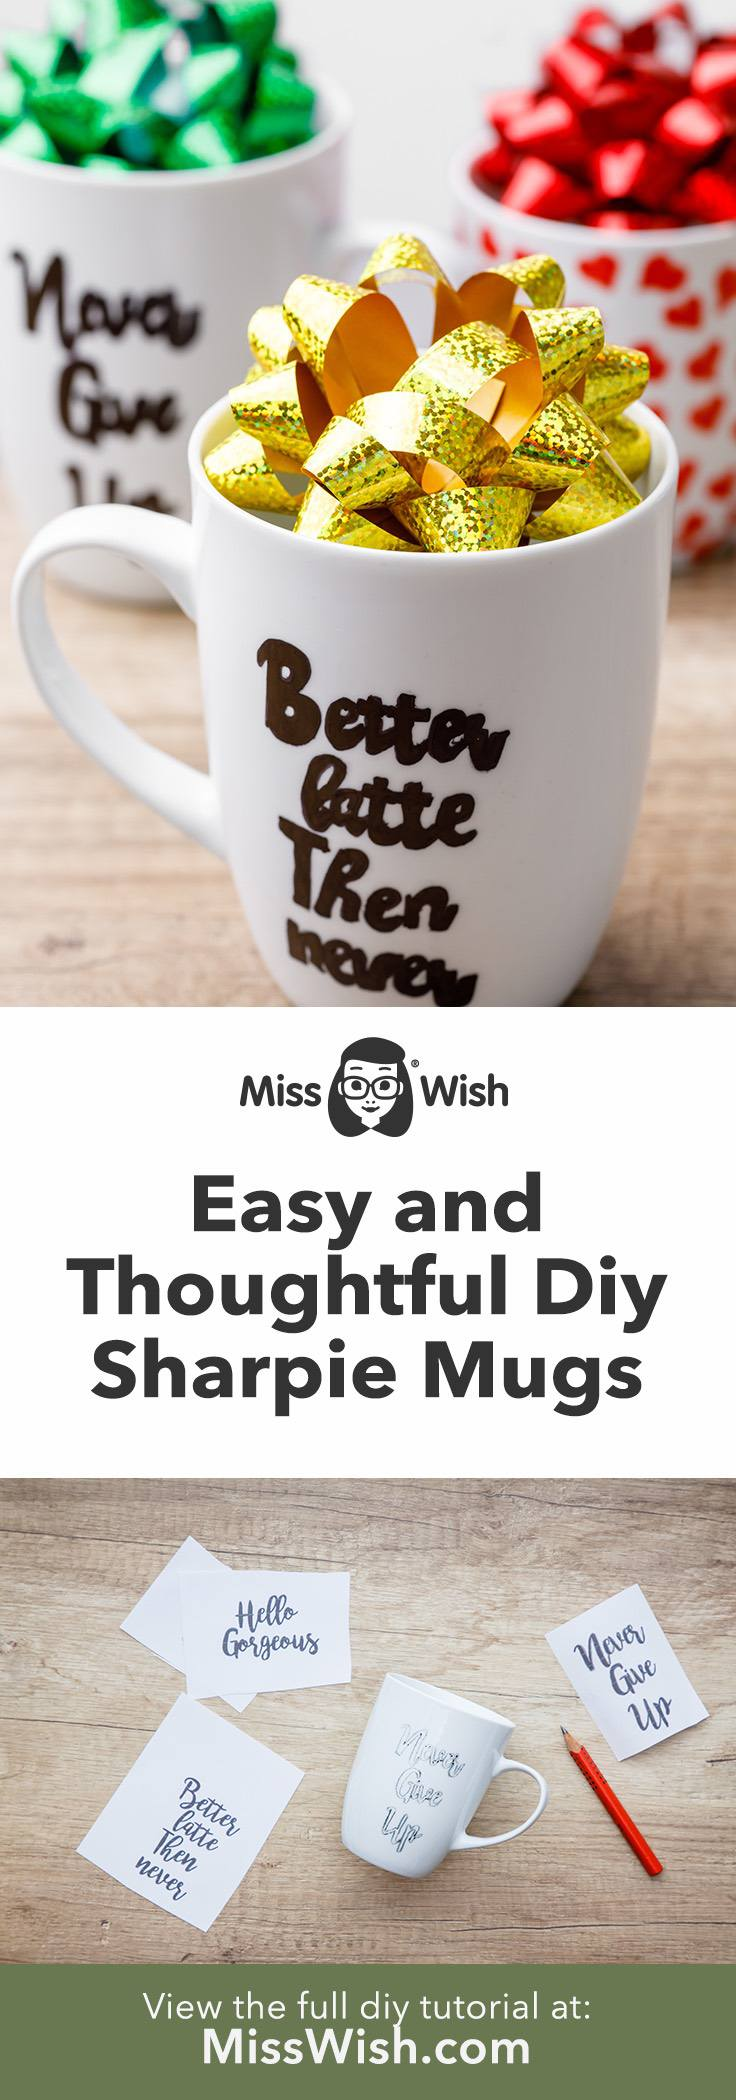 Diy Sharpie Mugs for a Thoughtful Homemade Gift